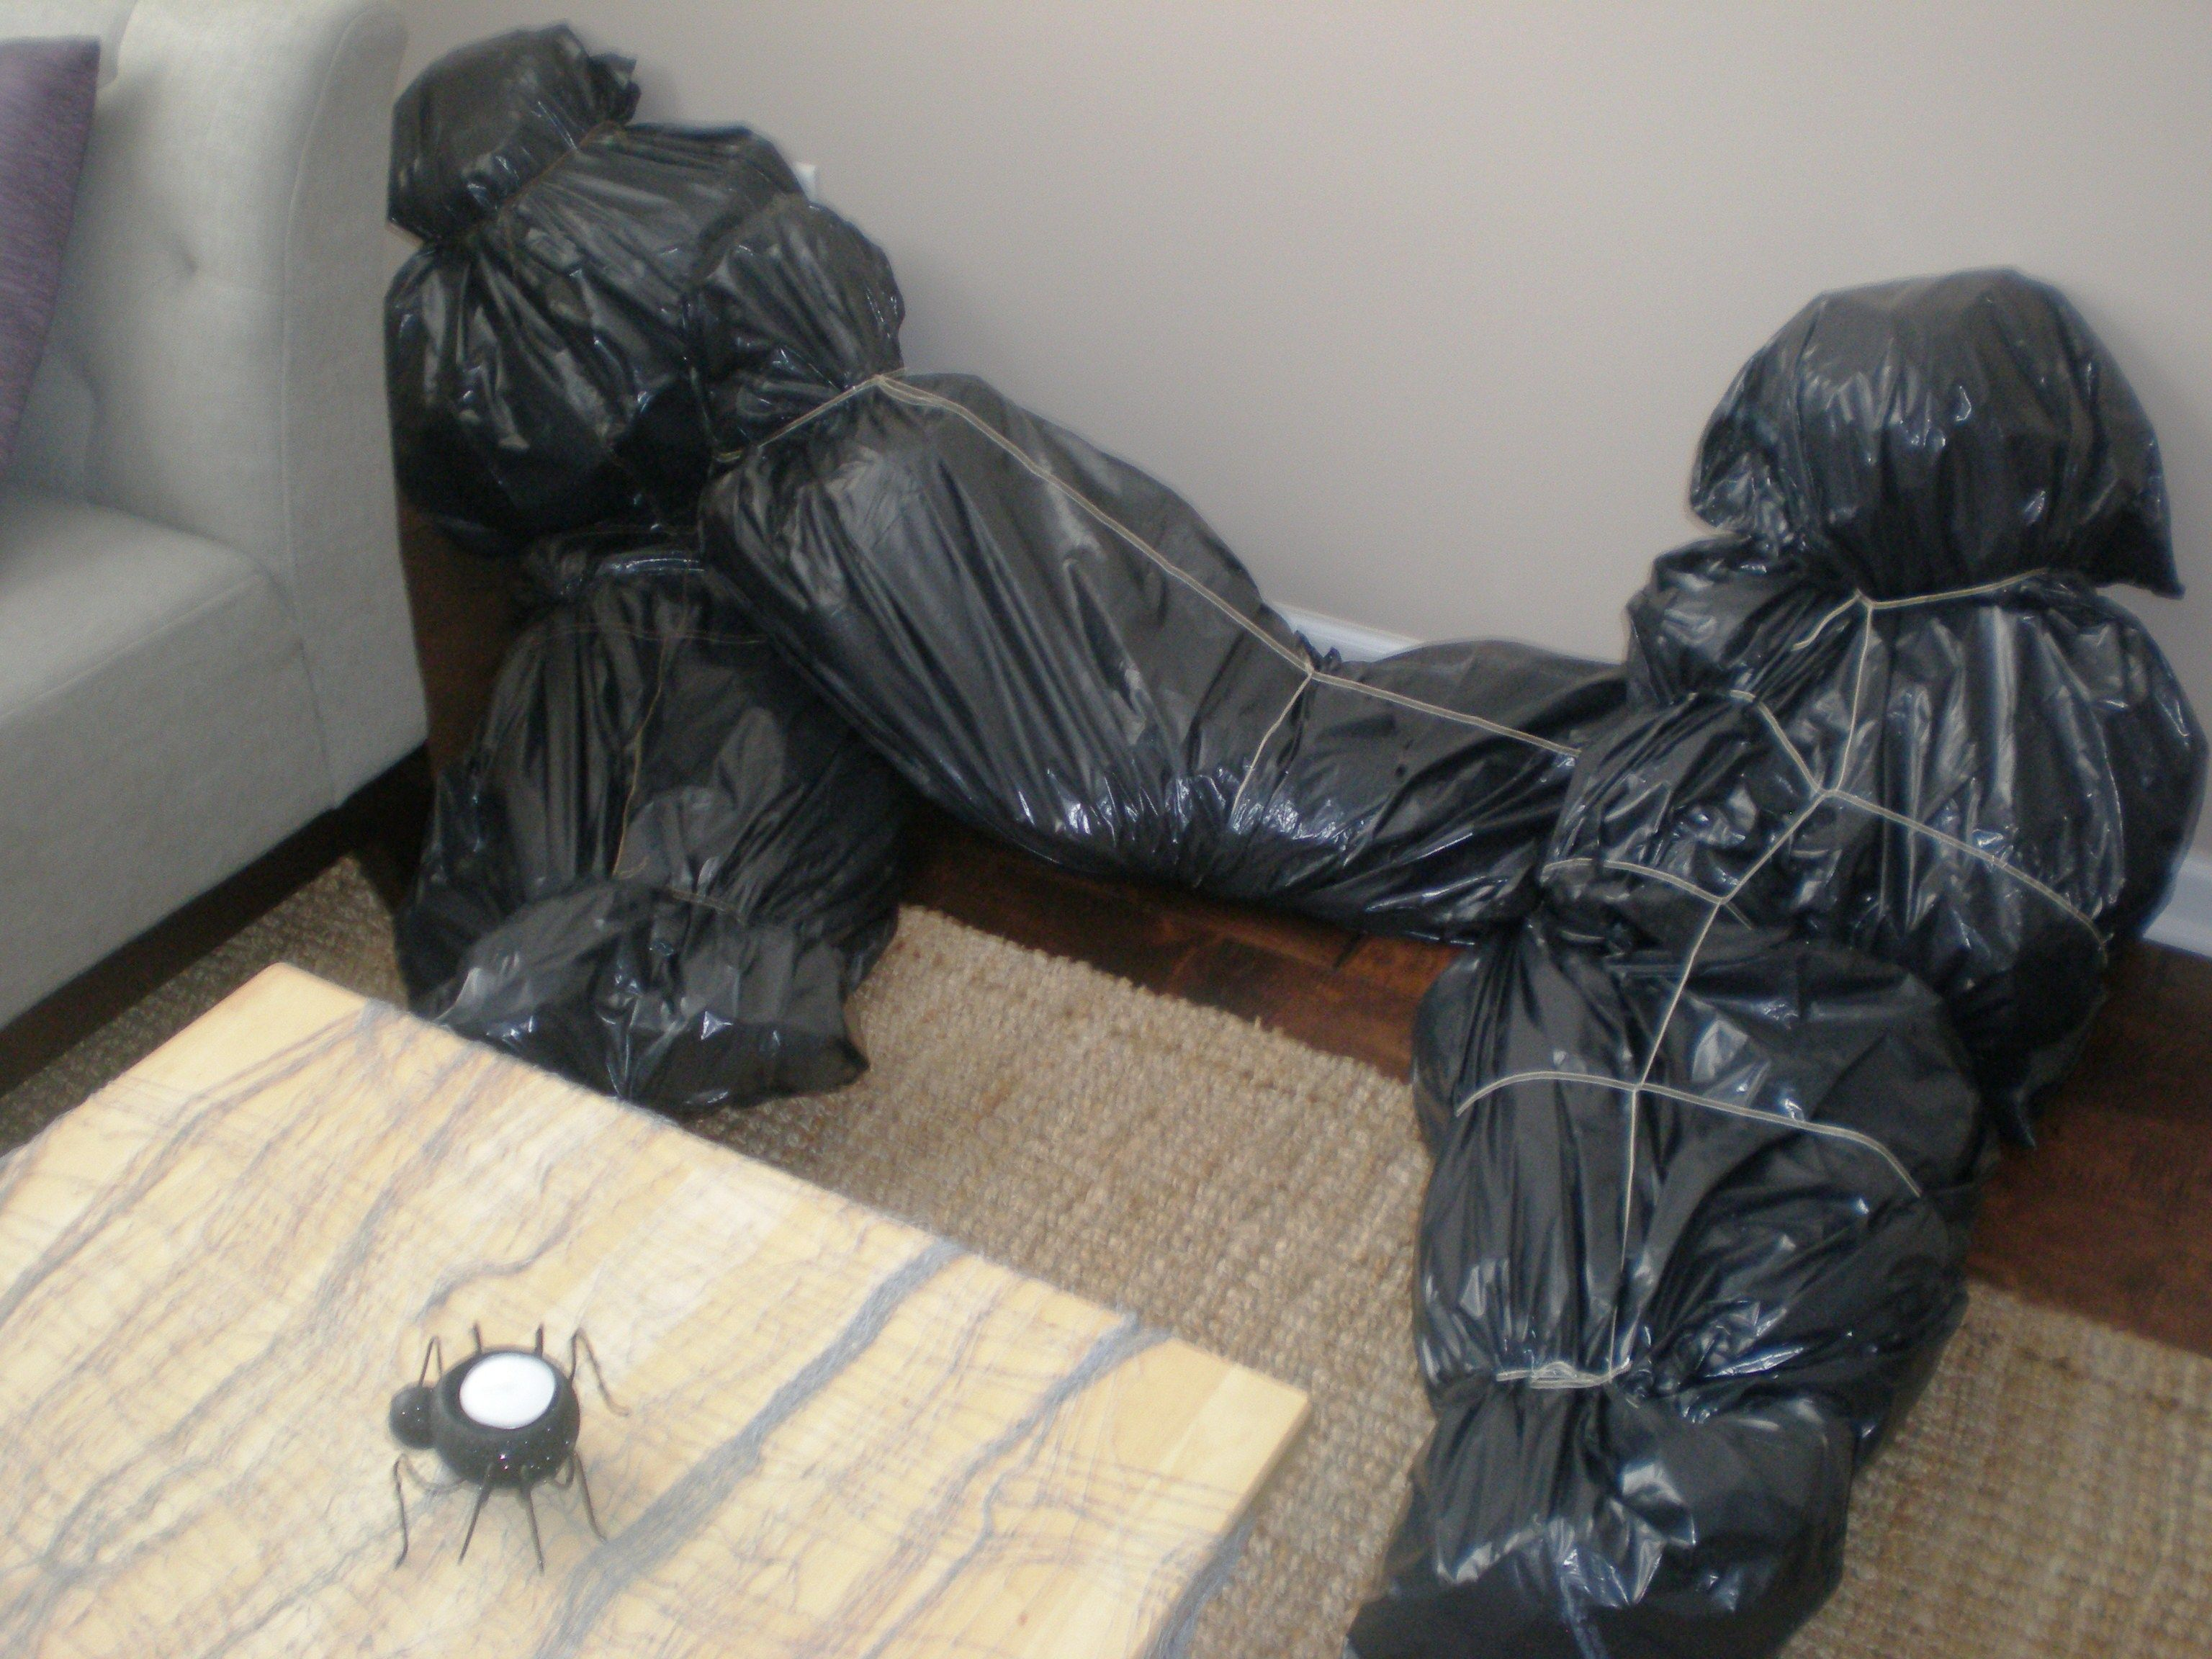 My Personal Bagged Bodies I Made Black Trash Bags Lots